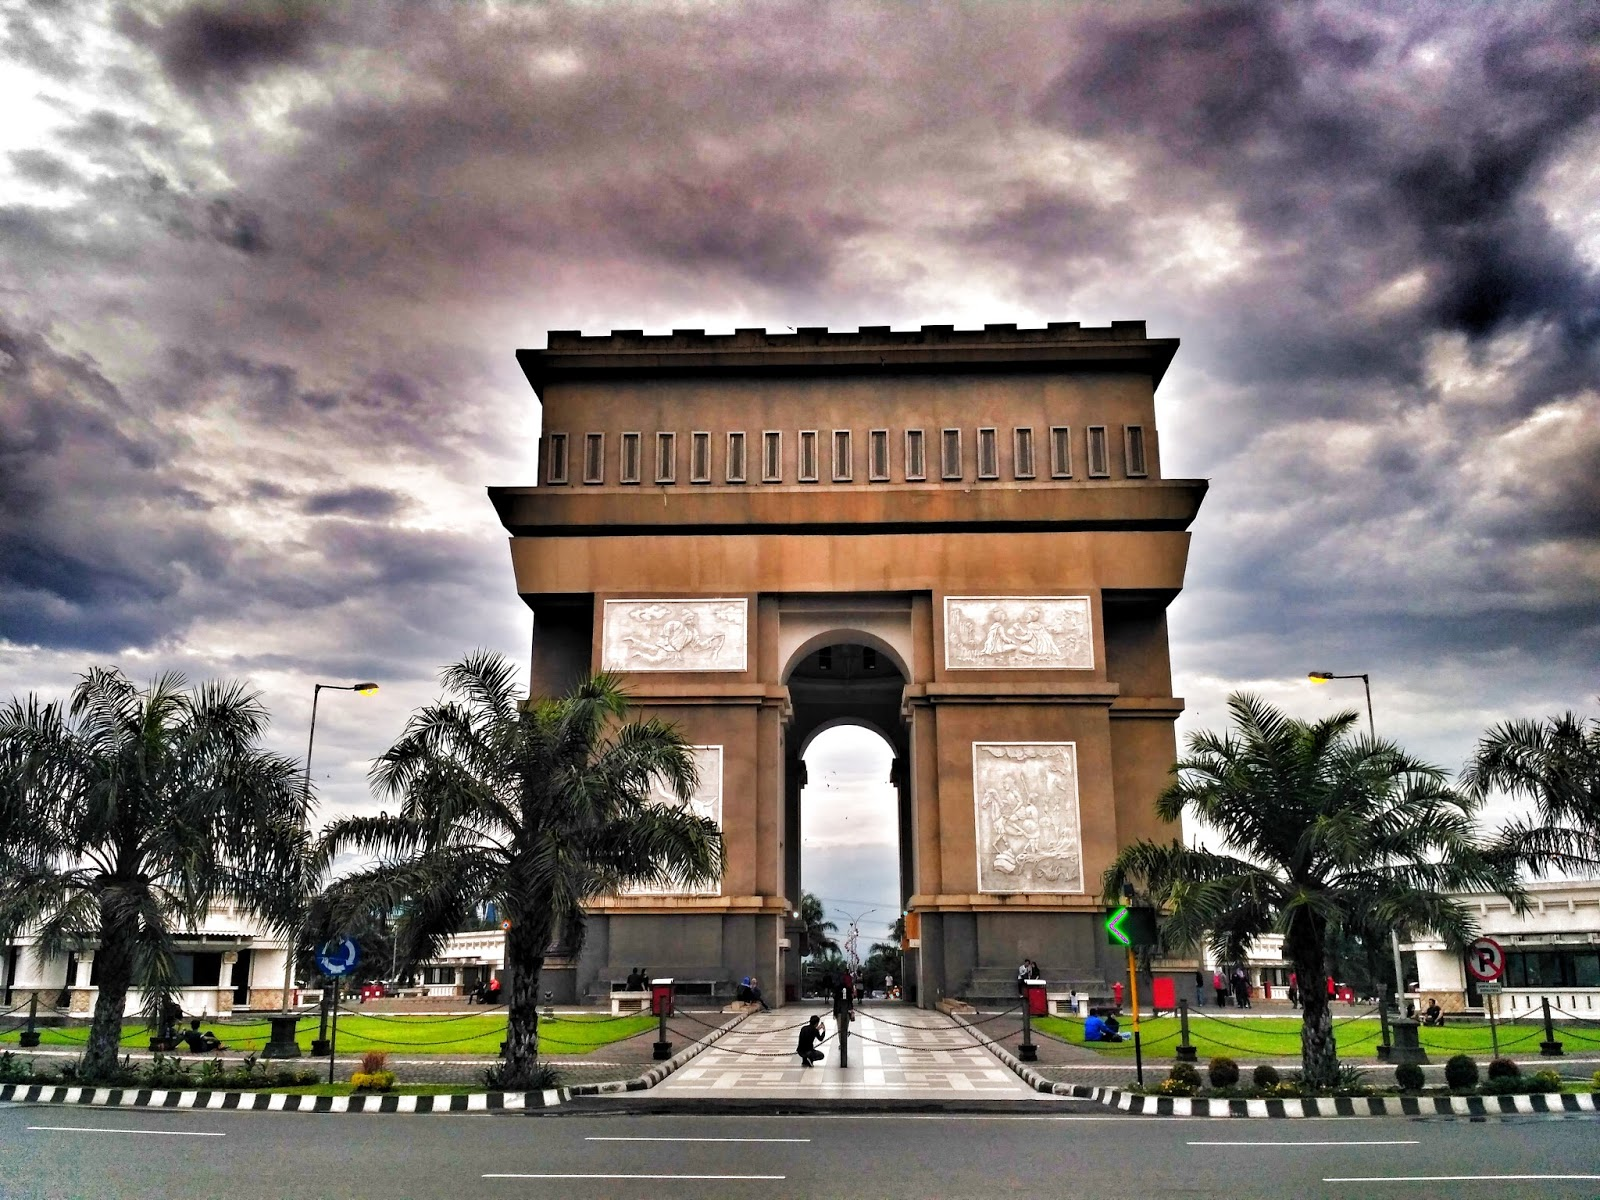 kediri town in east java province